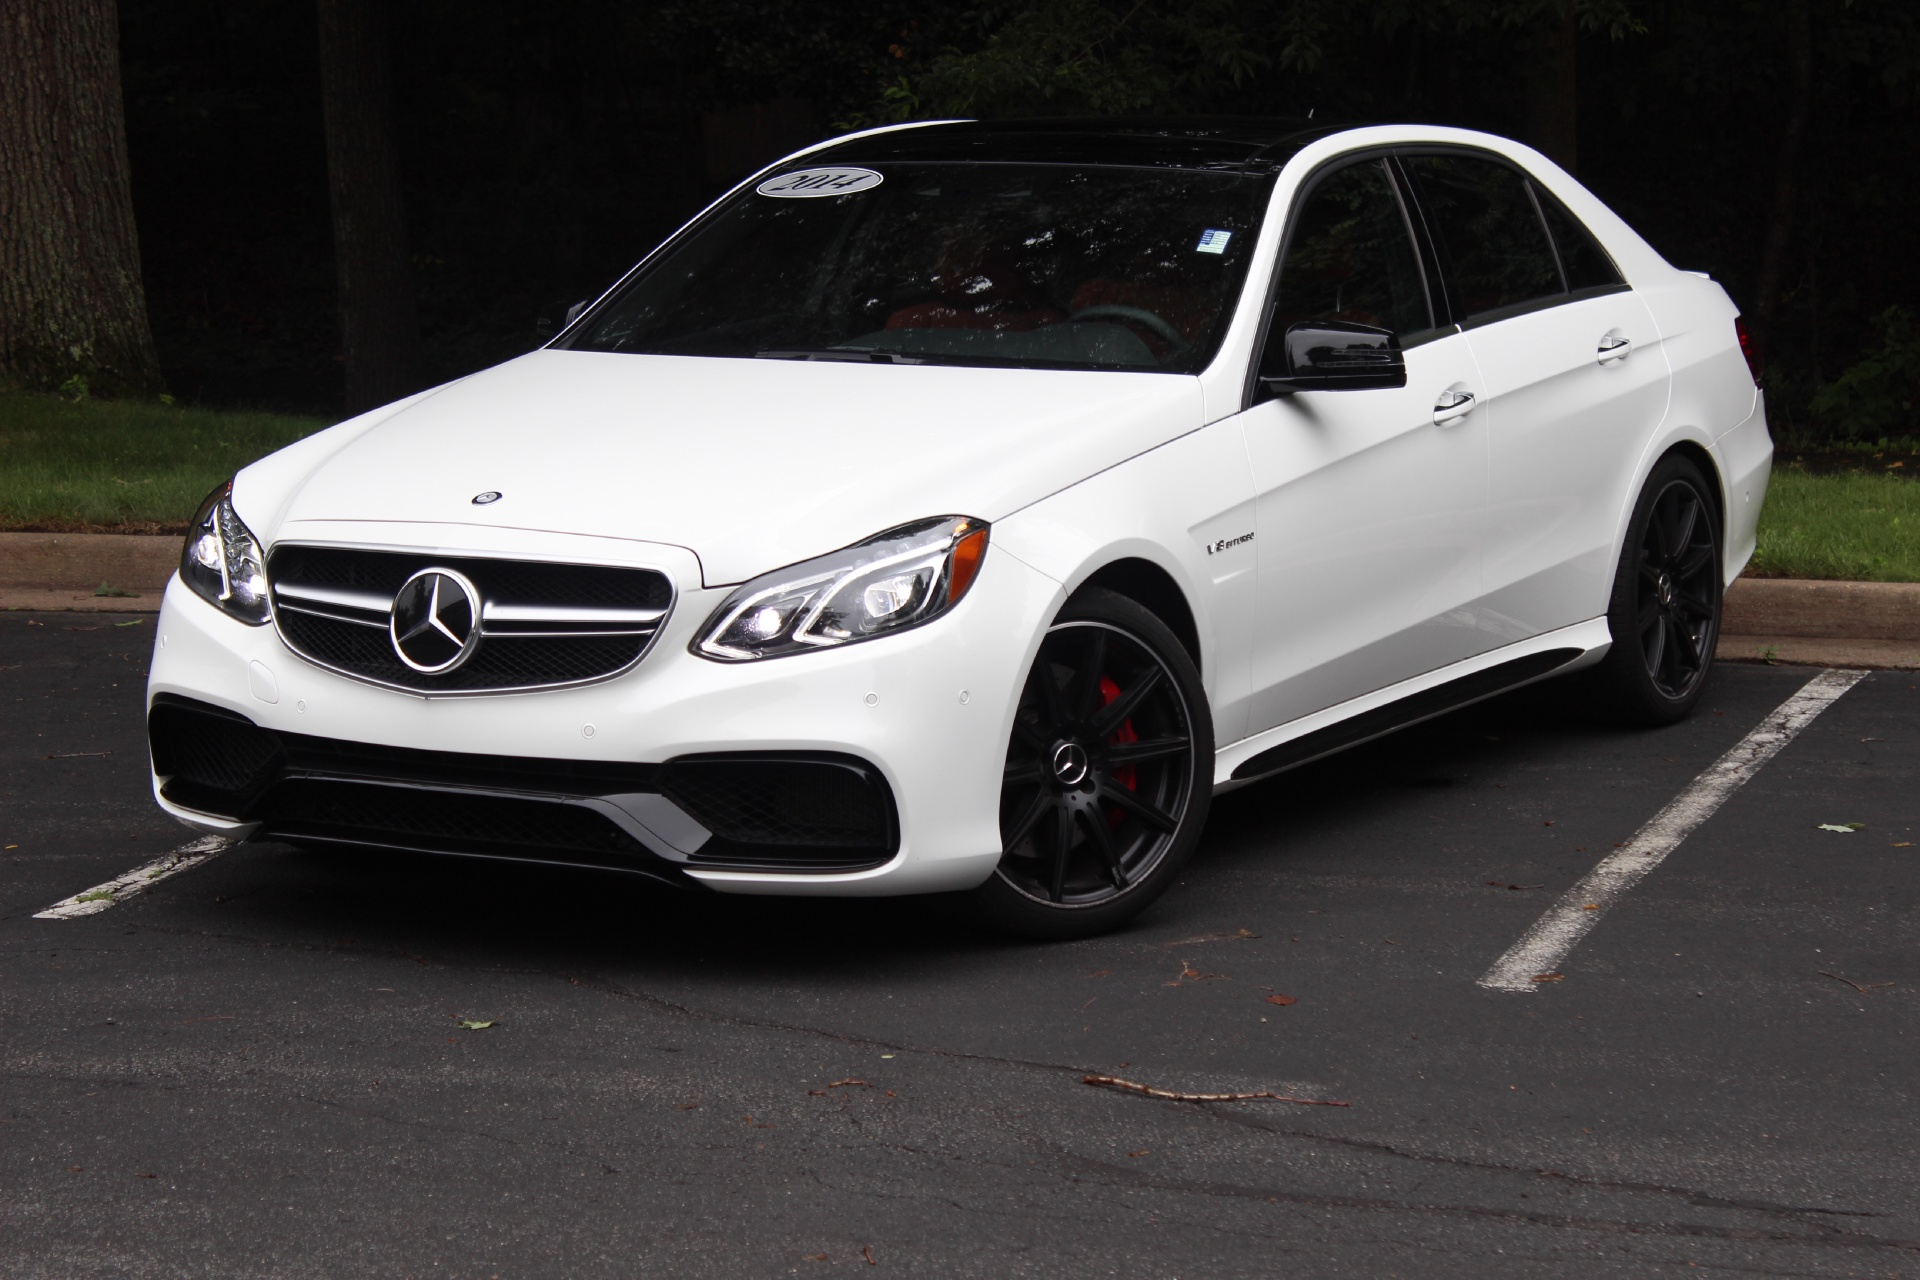 2014 mercedes benz e class e63 amg s model stock p002503 for sale near vienna va va. Black Bedroom Furniture Sets. Home Design Ideas